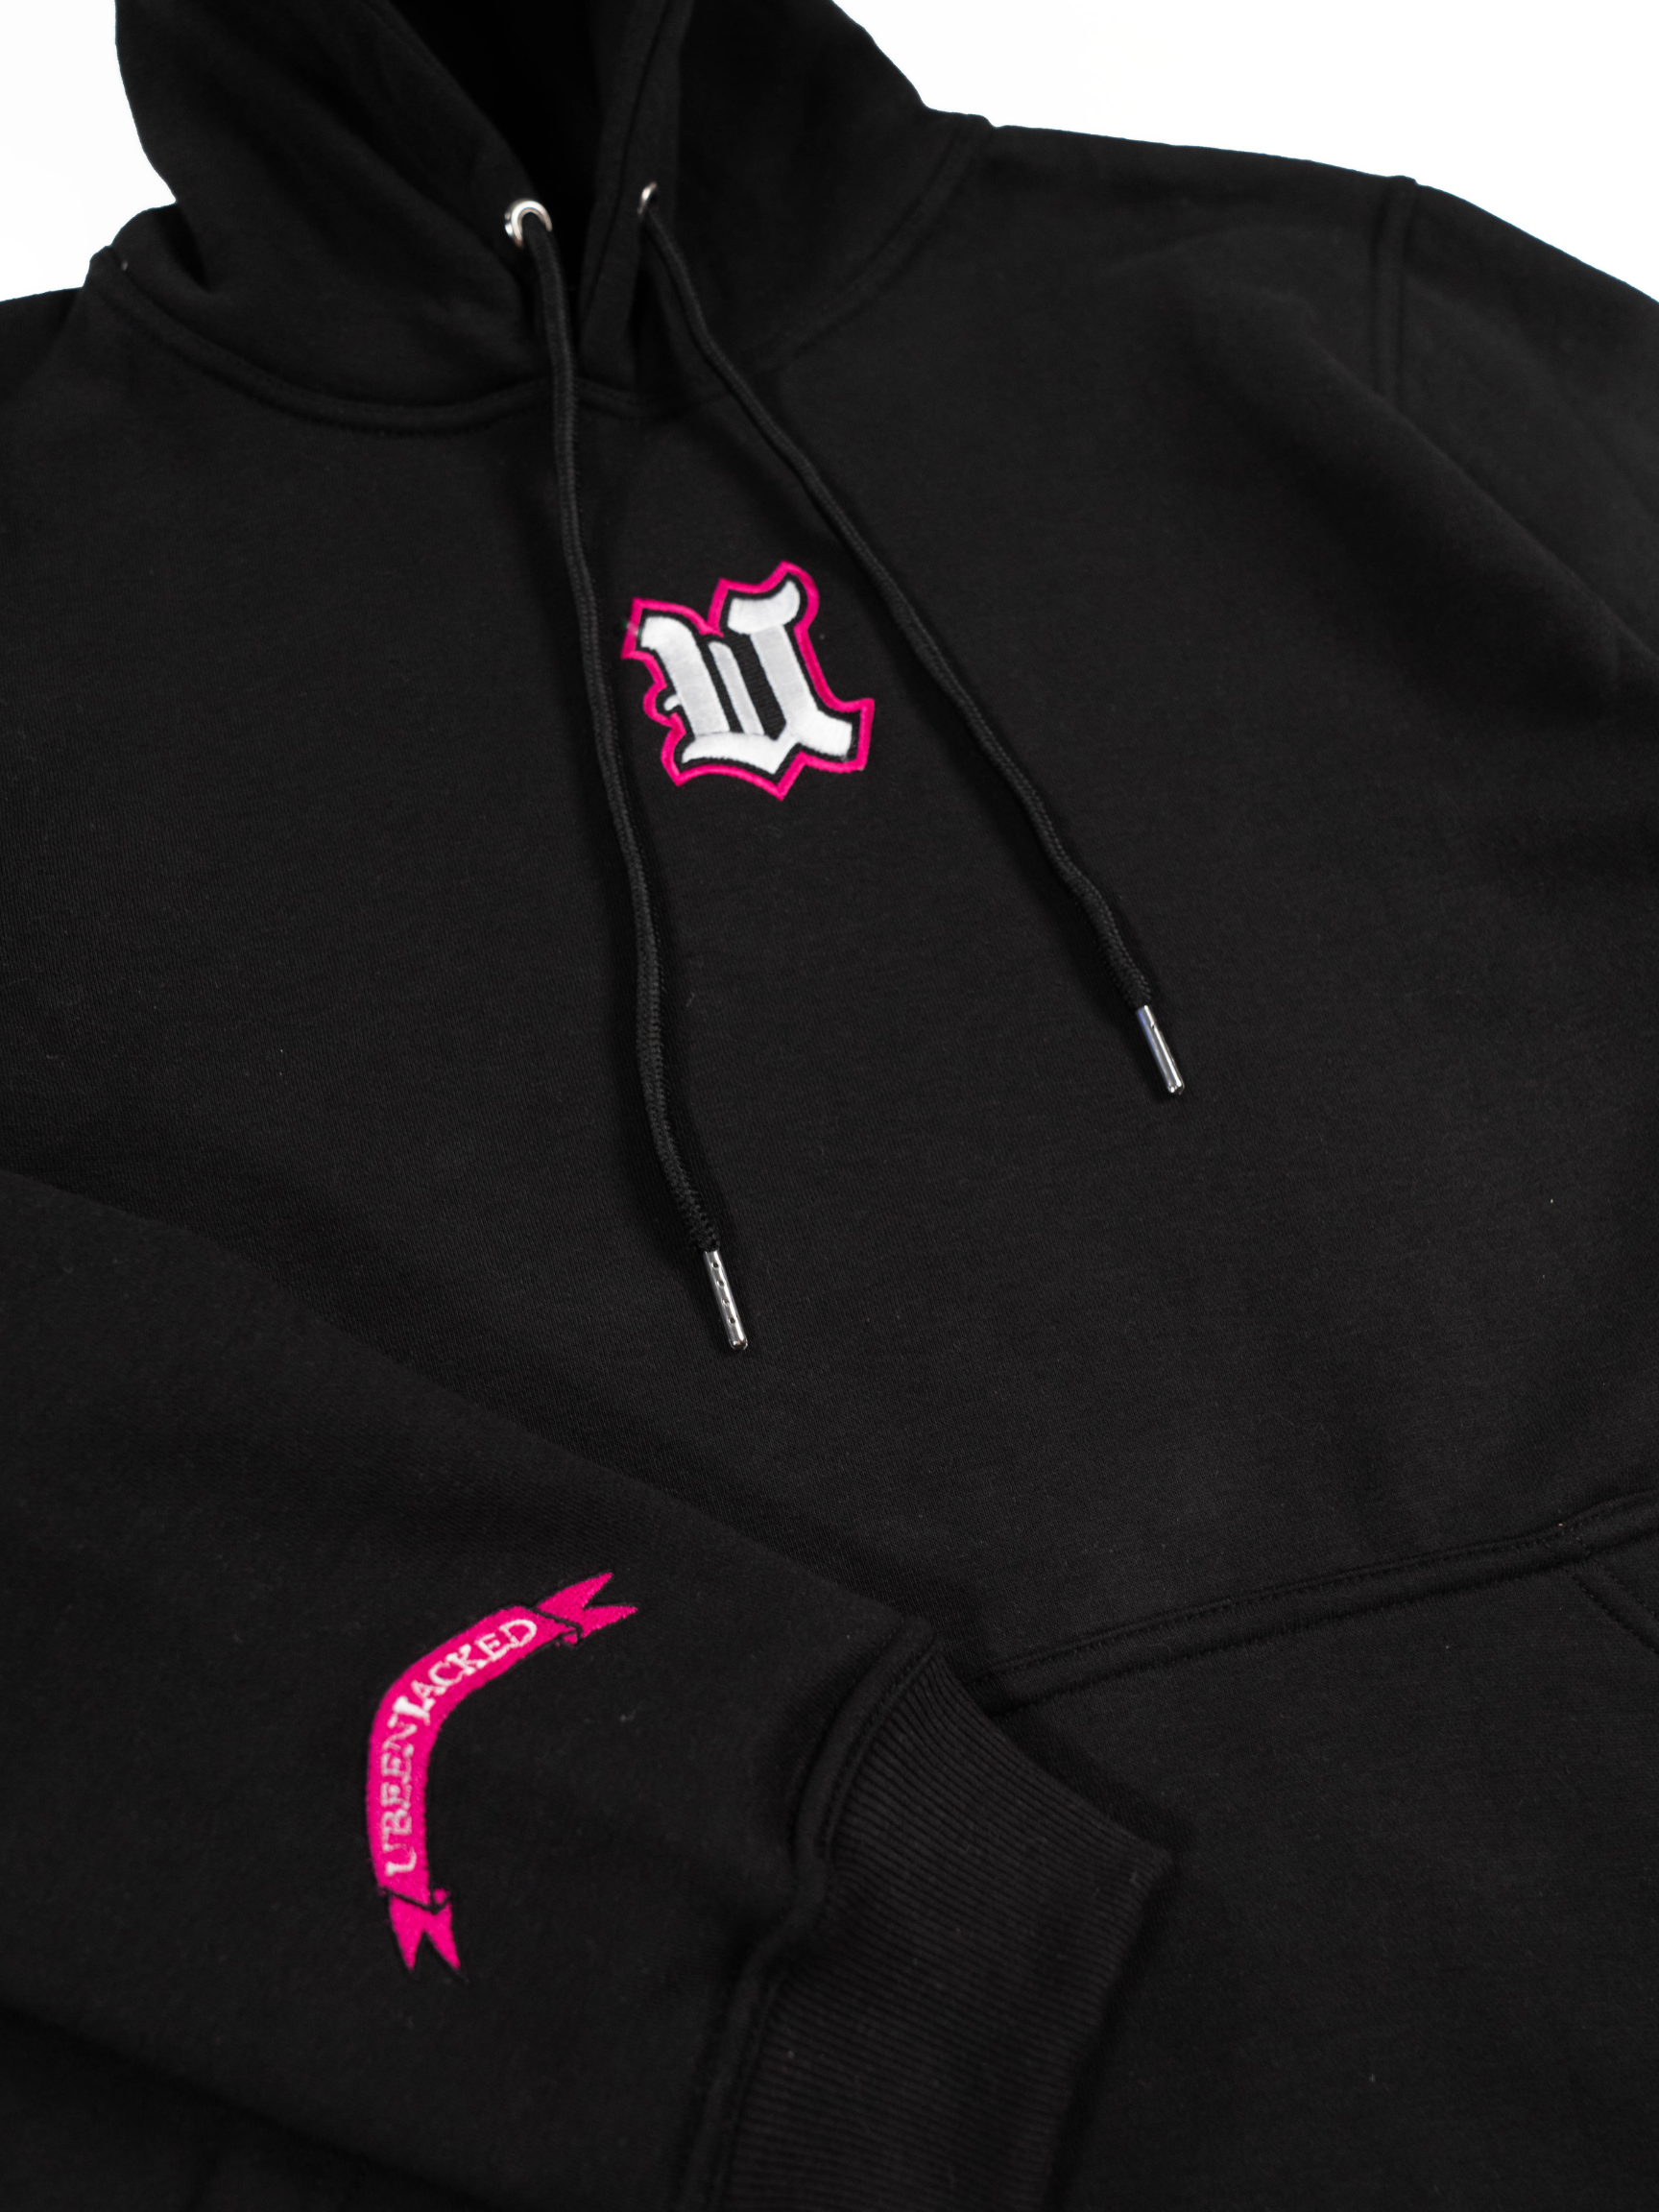 DCDCT Black Hoodie close up embroidery